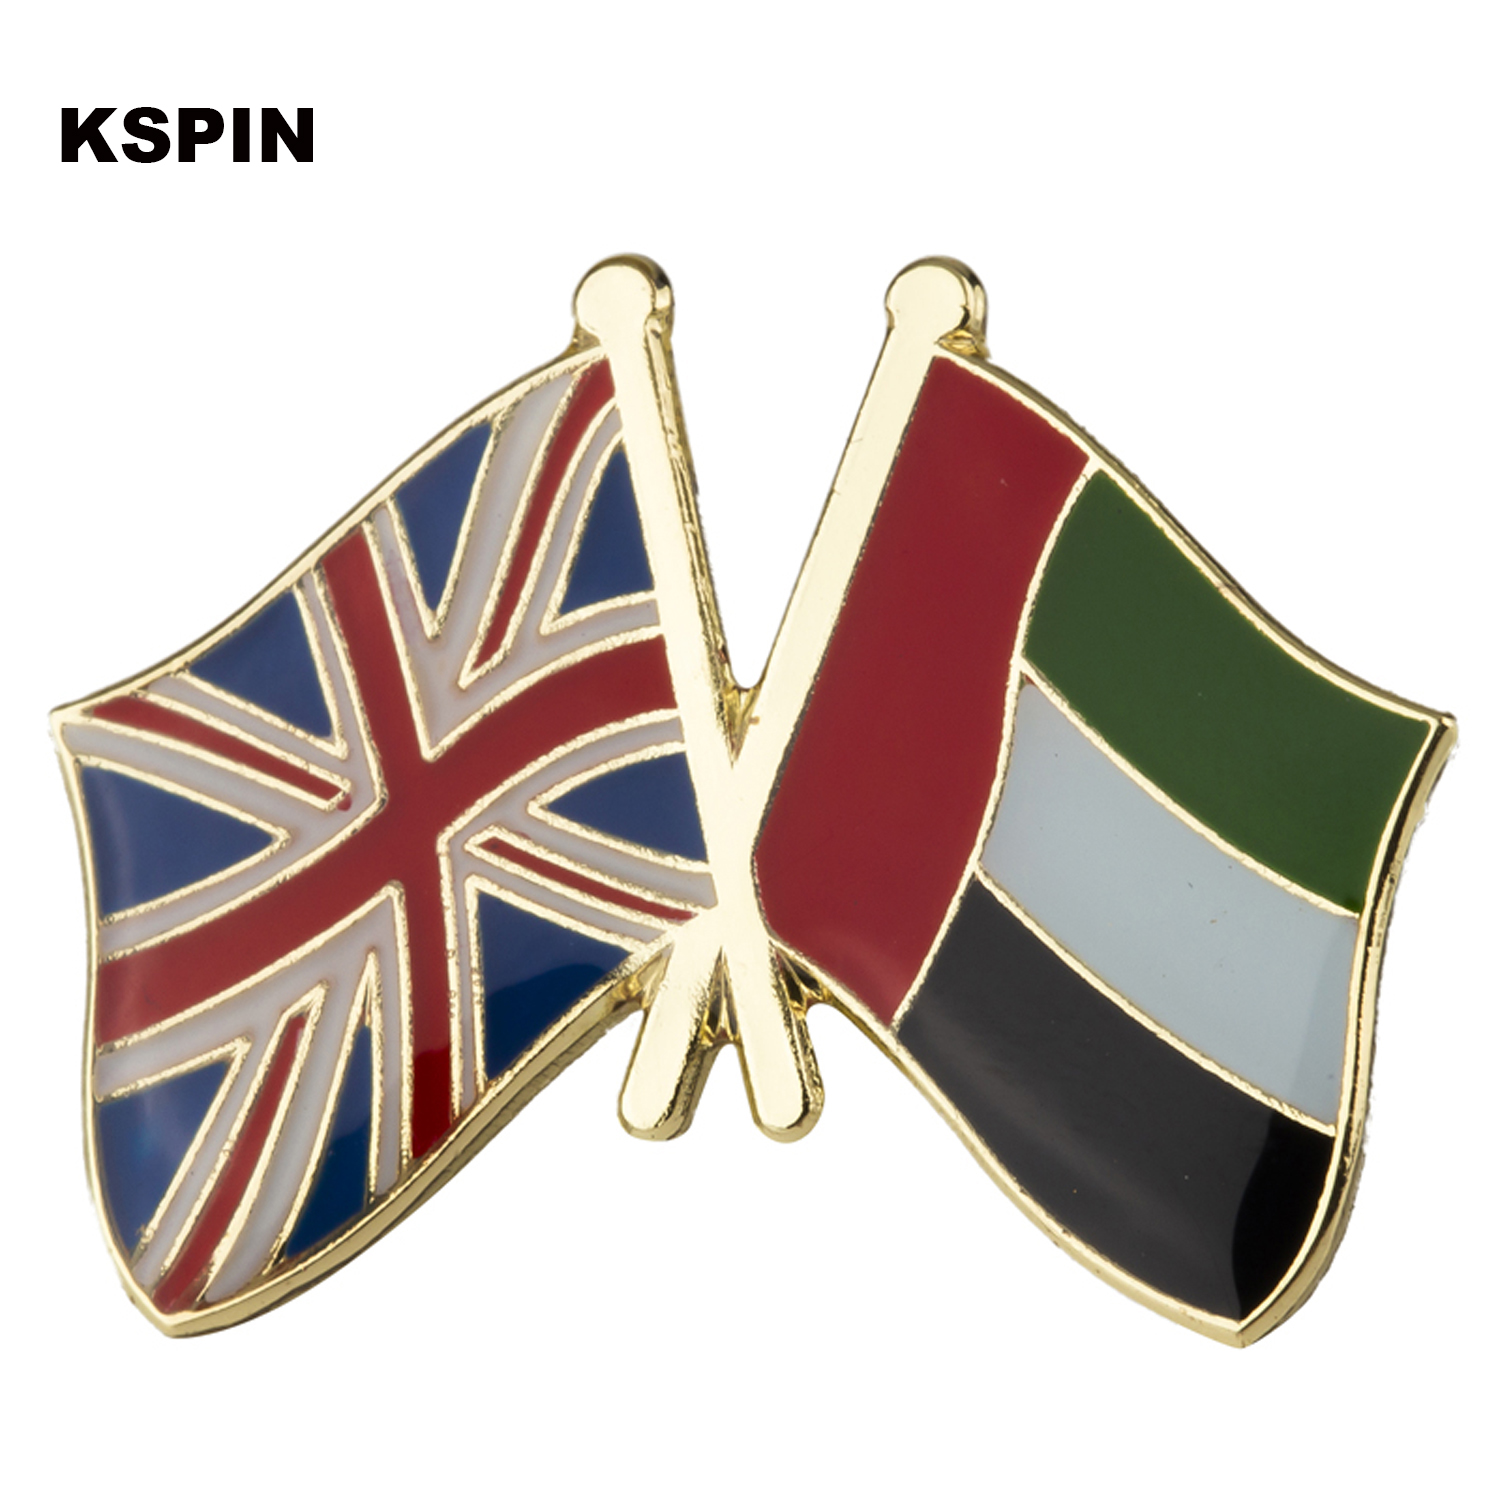 1pcs Metal Badges United Kingdom And U.a.e Friendship Flag Laple Pin Przypinki In Brooches Pins Xy0345 Price Remains Stable Arts,crafts & Sewing